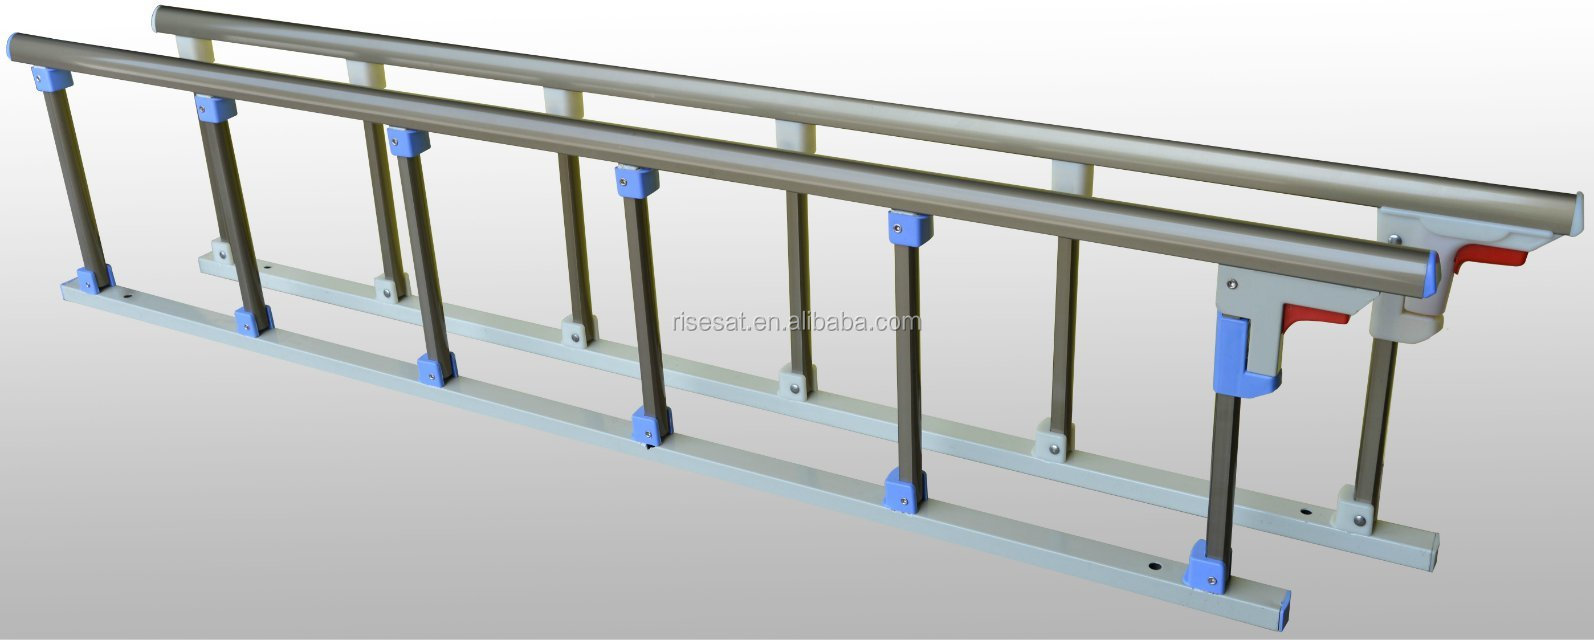 Stainless Steel Hospital Bed Side Rails , hospital bed folding guard rails